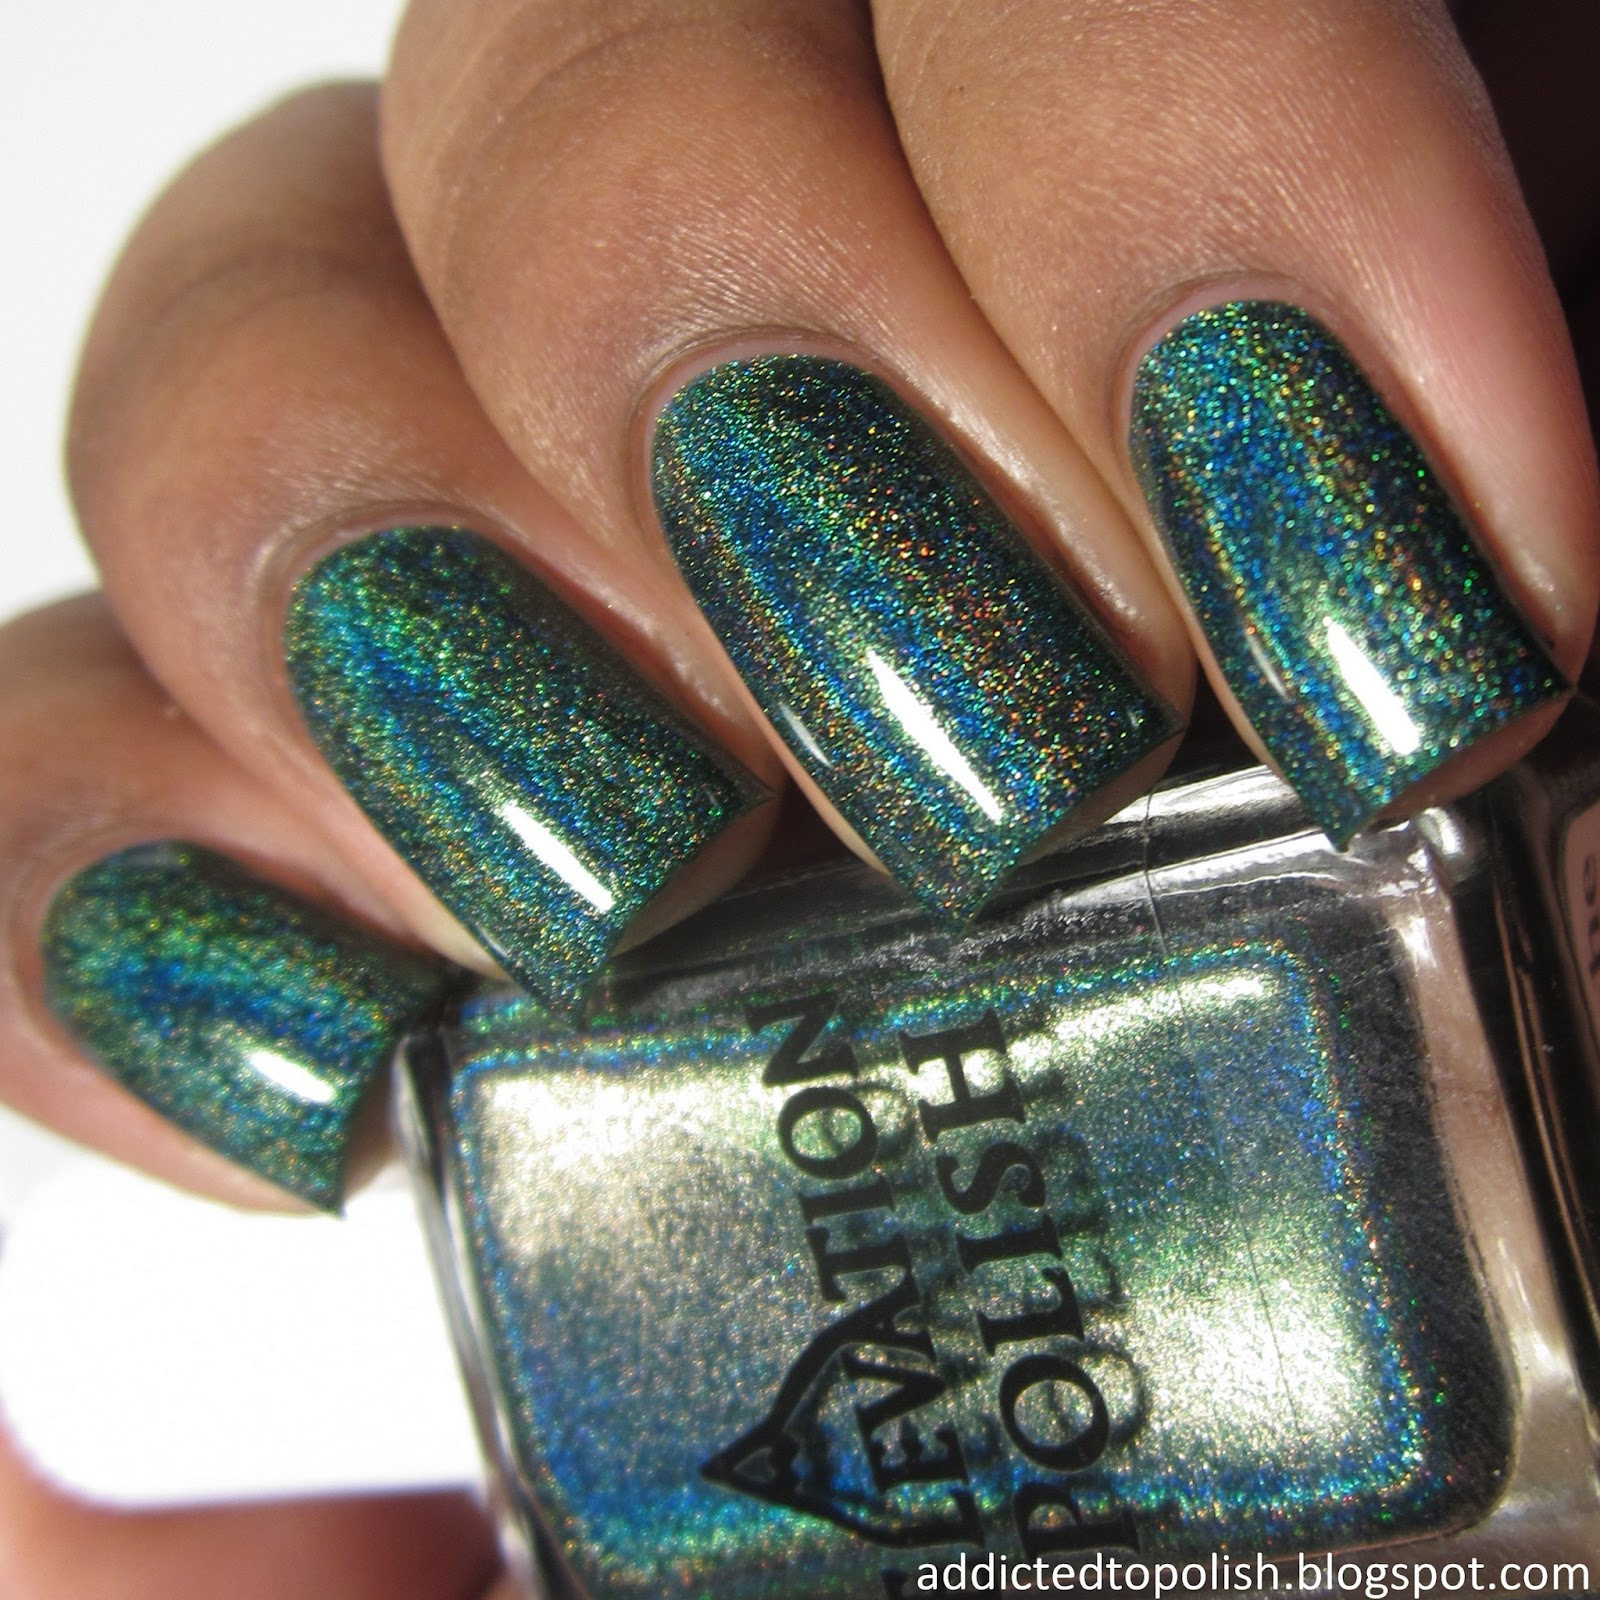 elevation polish lost in the darkness 2